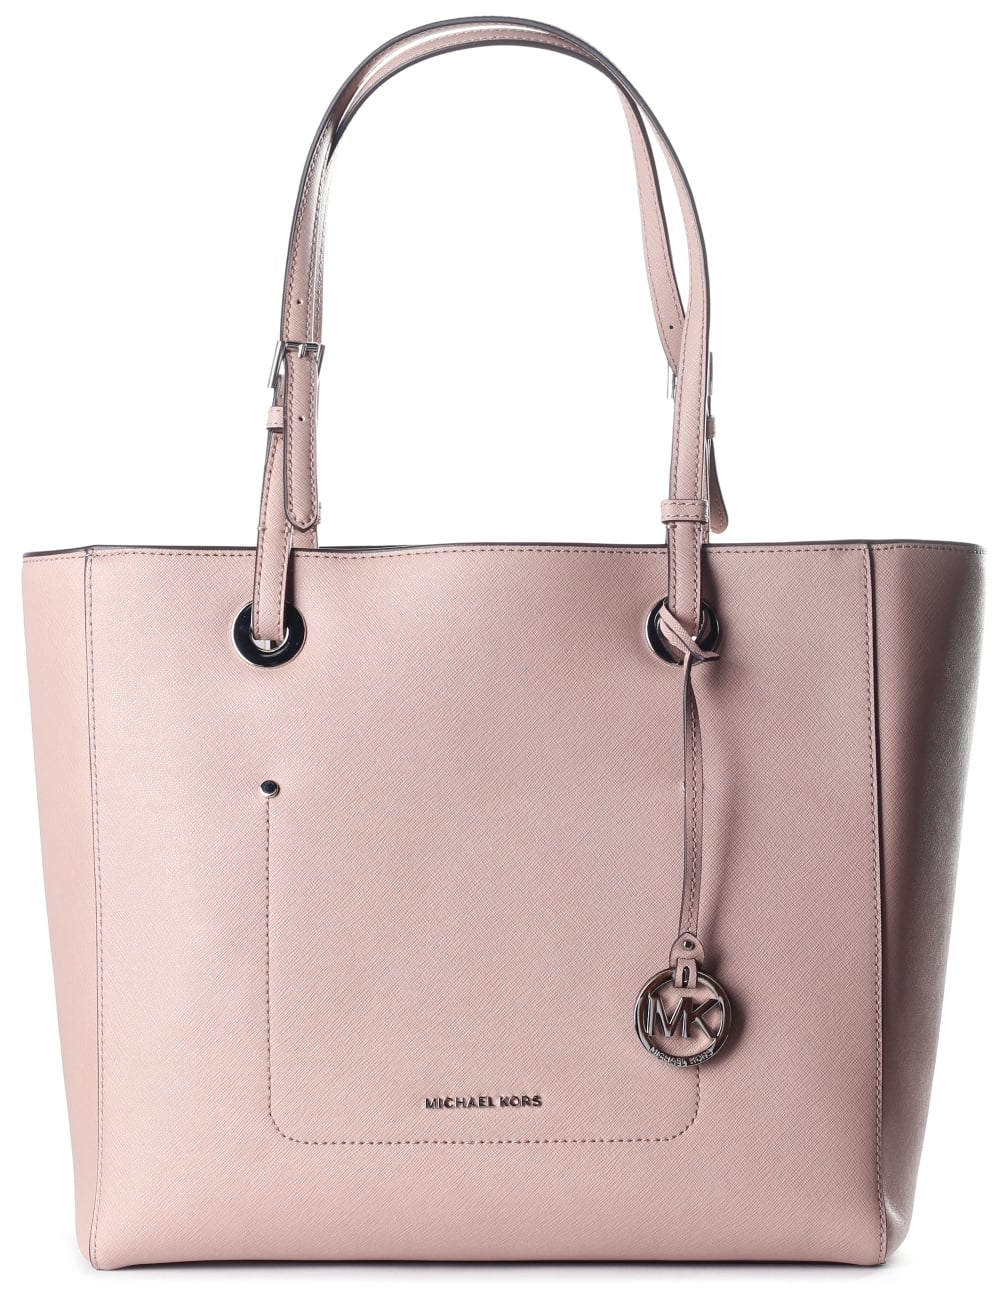 47c16d0f182c77 Michael Kors Women's Large Walsh Saffiano Leather Tote